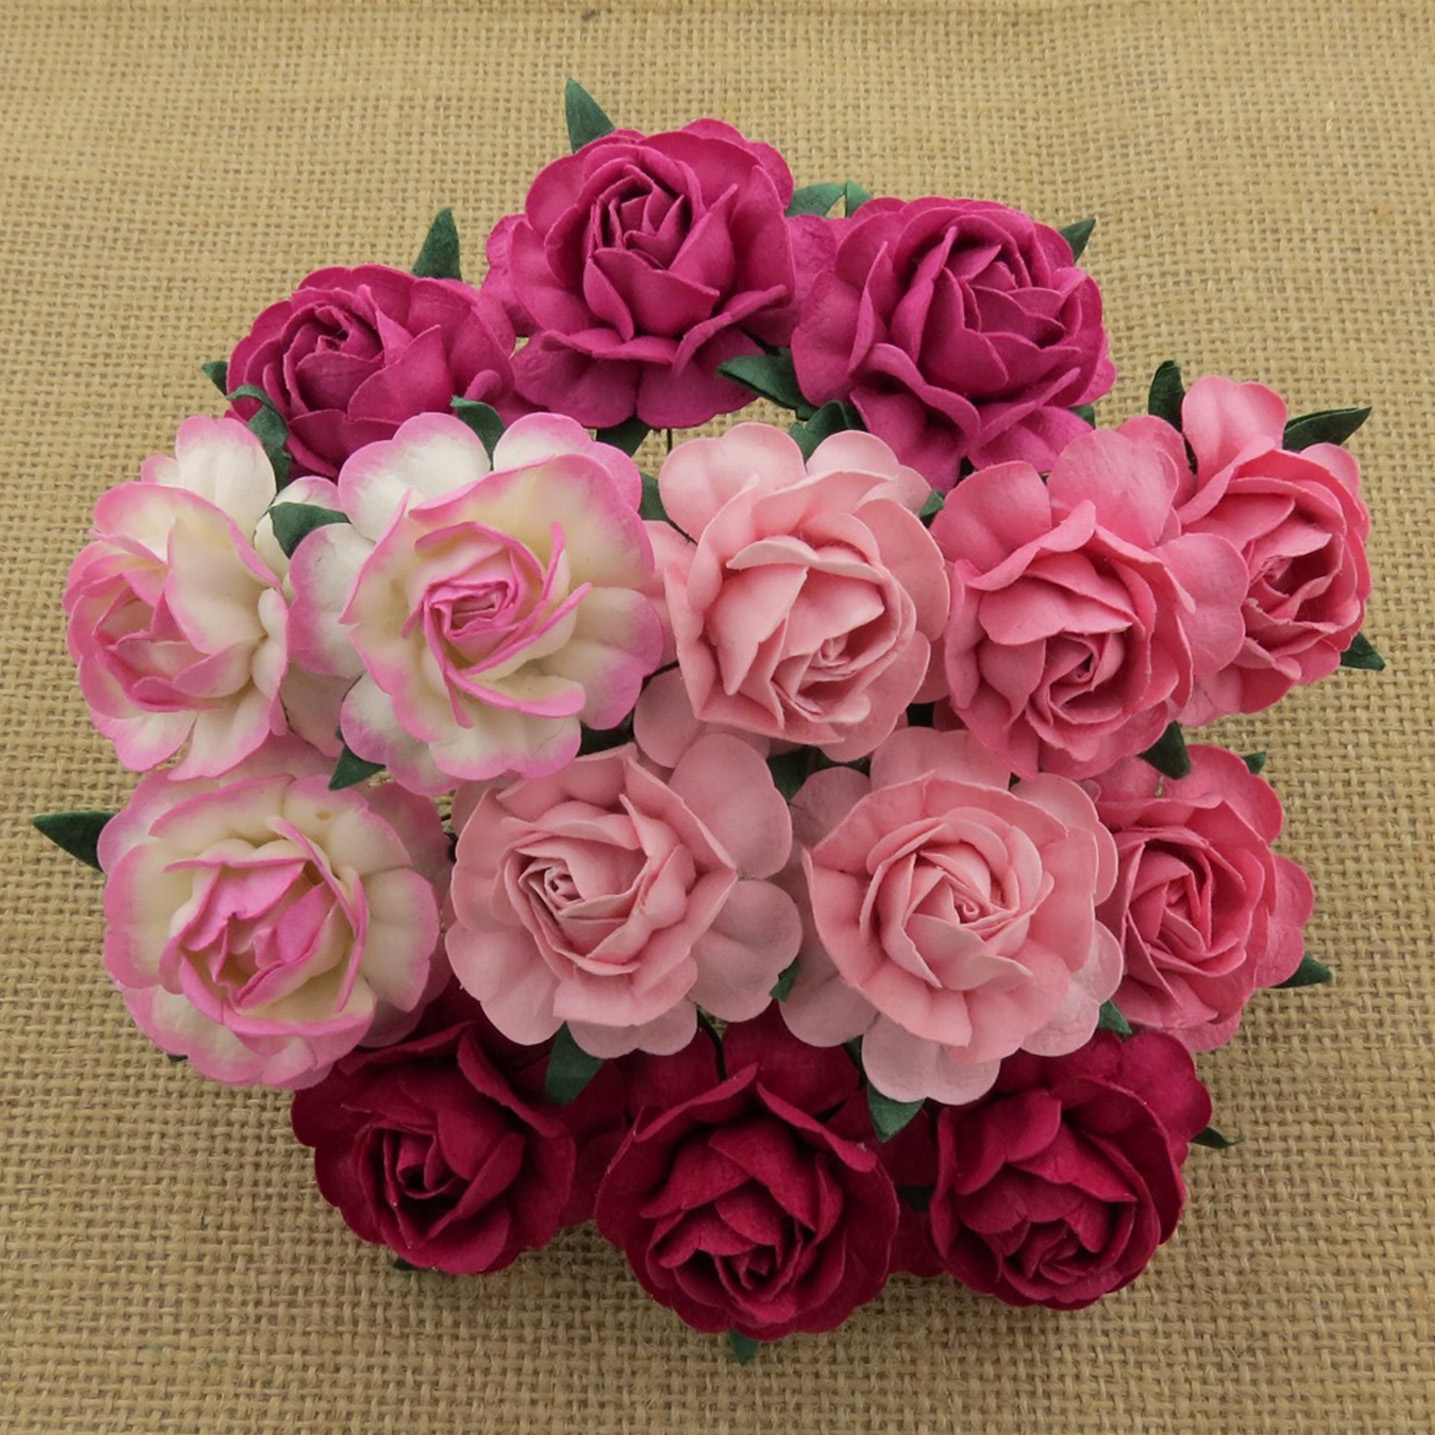 50 MIXED PINK MULBERRY PAPER TEA ROSES 40mm - 5 COLOR